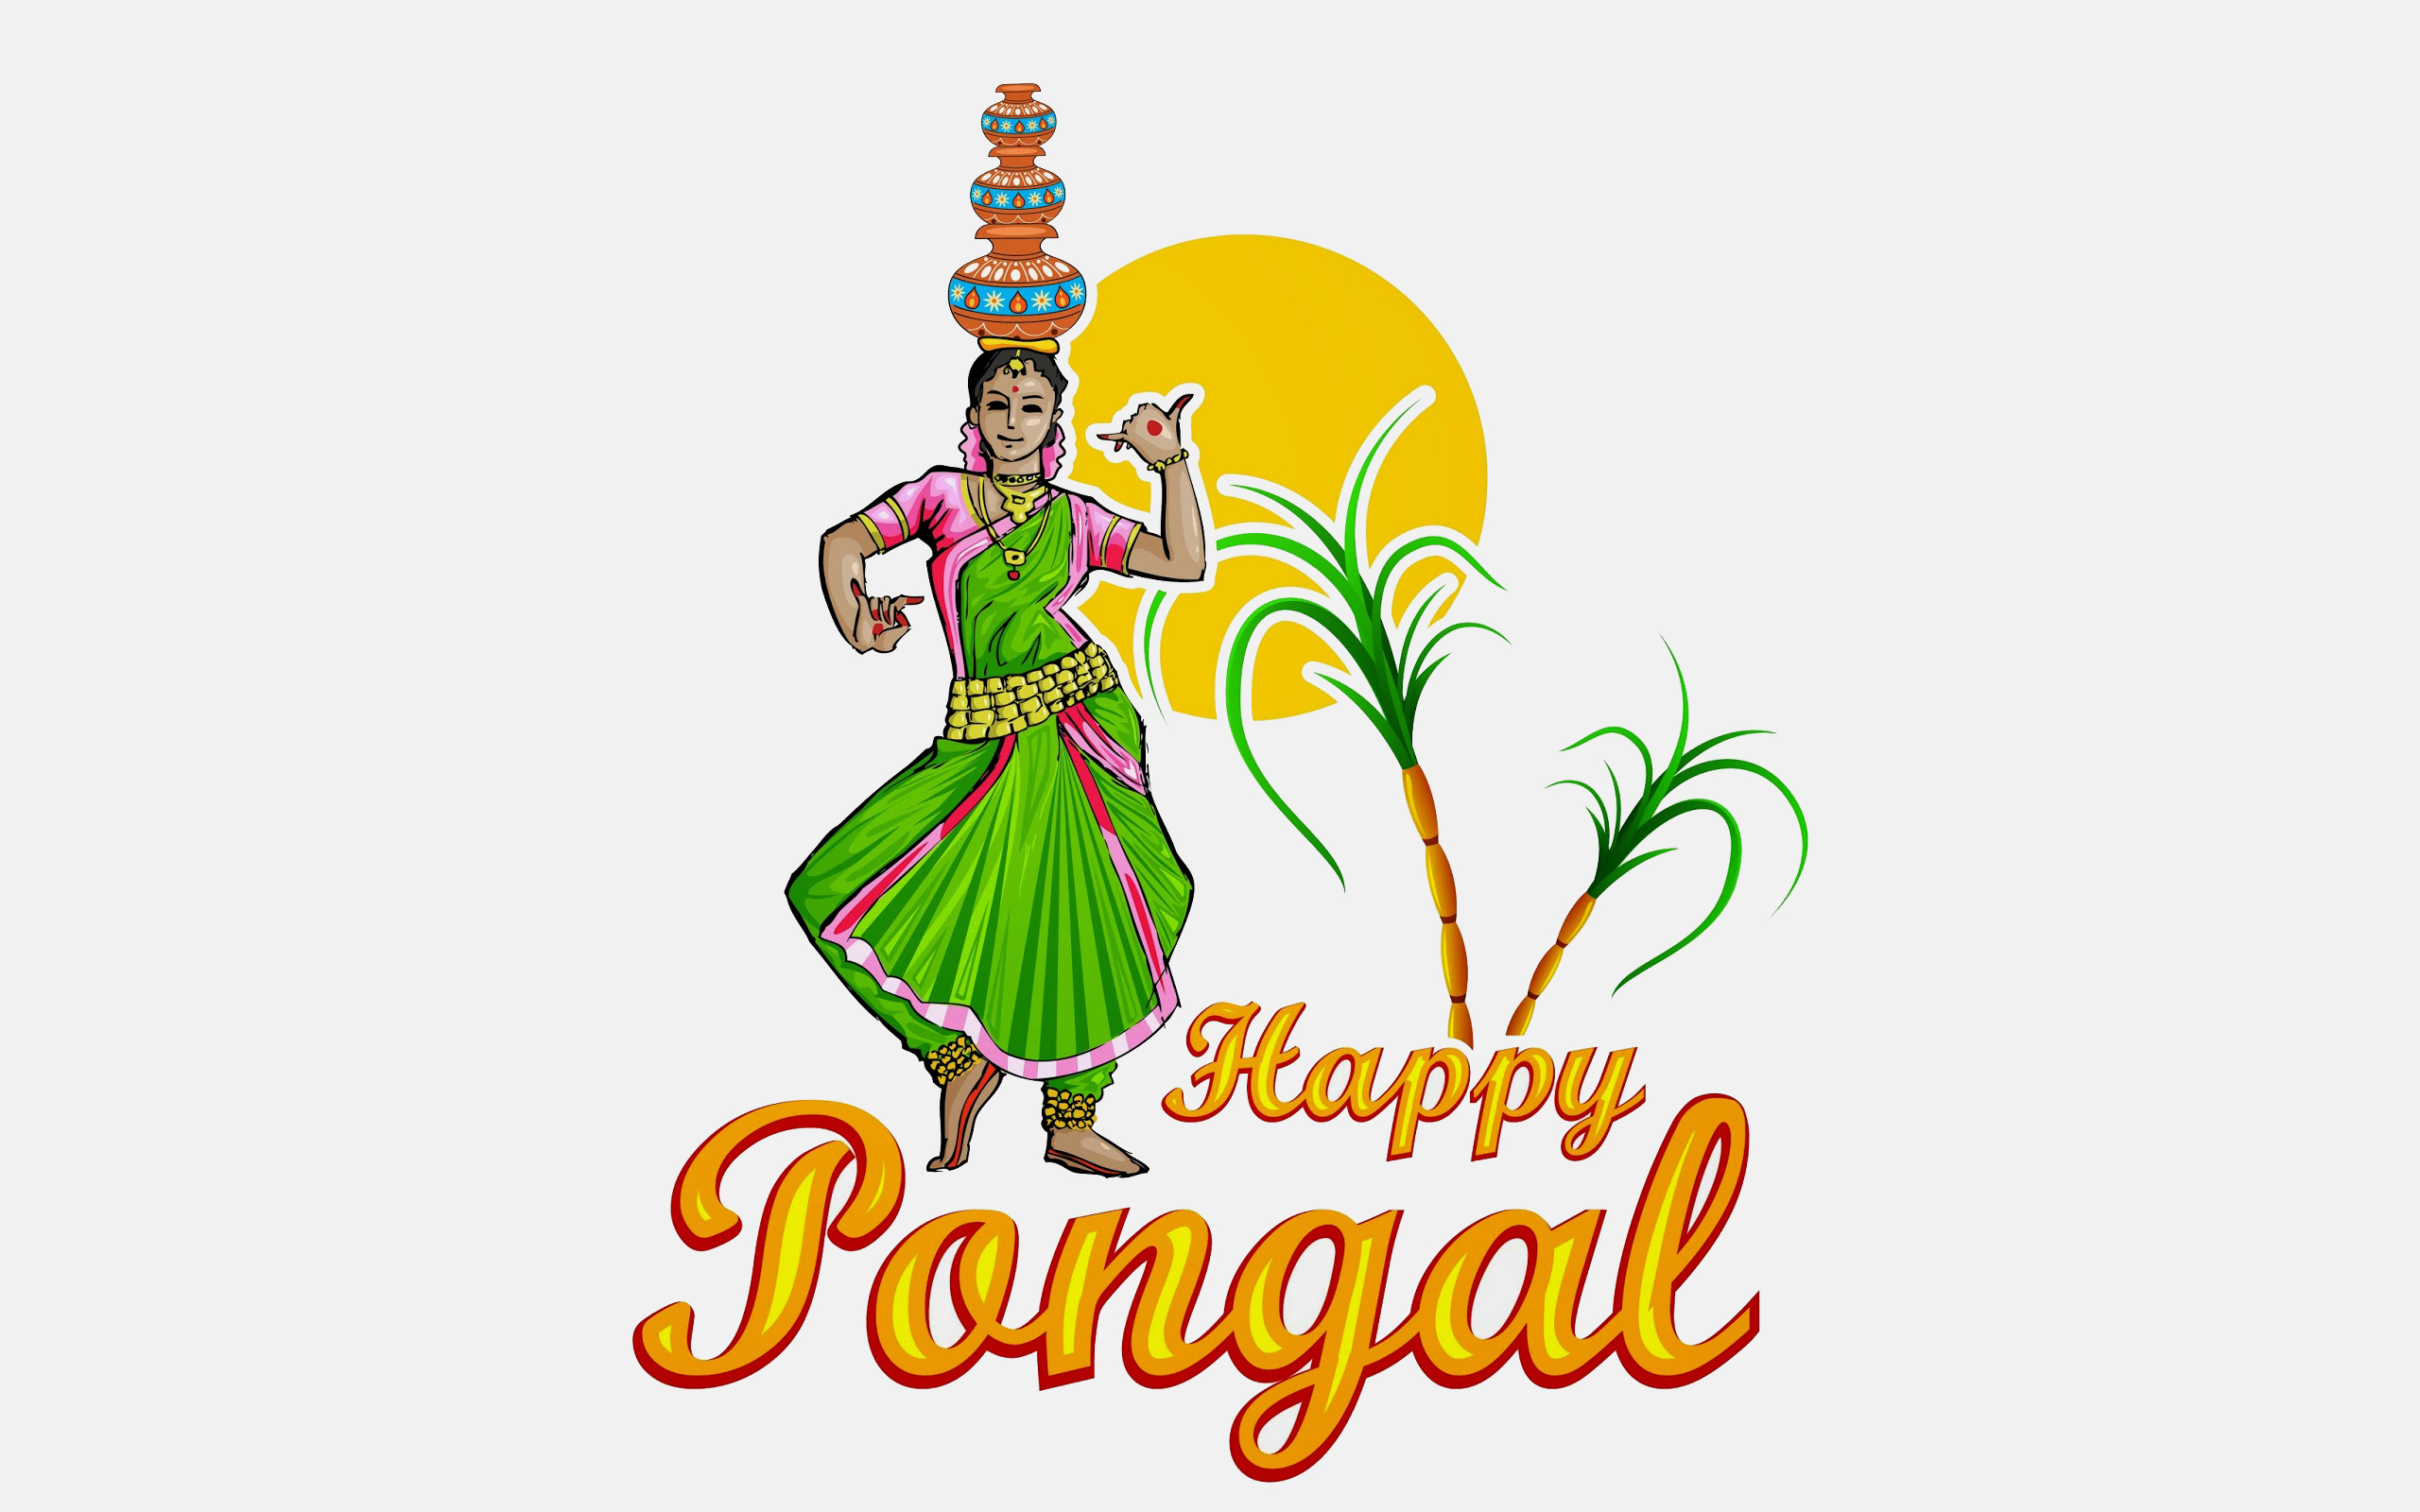 Happy pongal festival wishes dancing woman hd pc wallpaper kristyandbryce Images